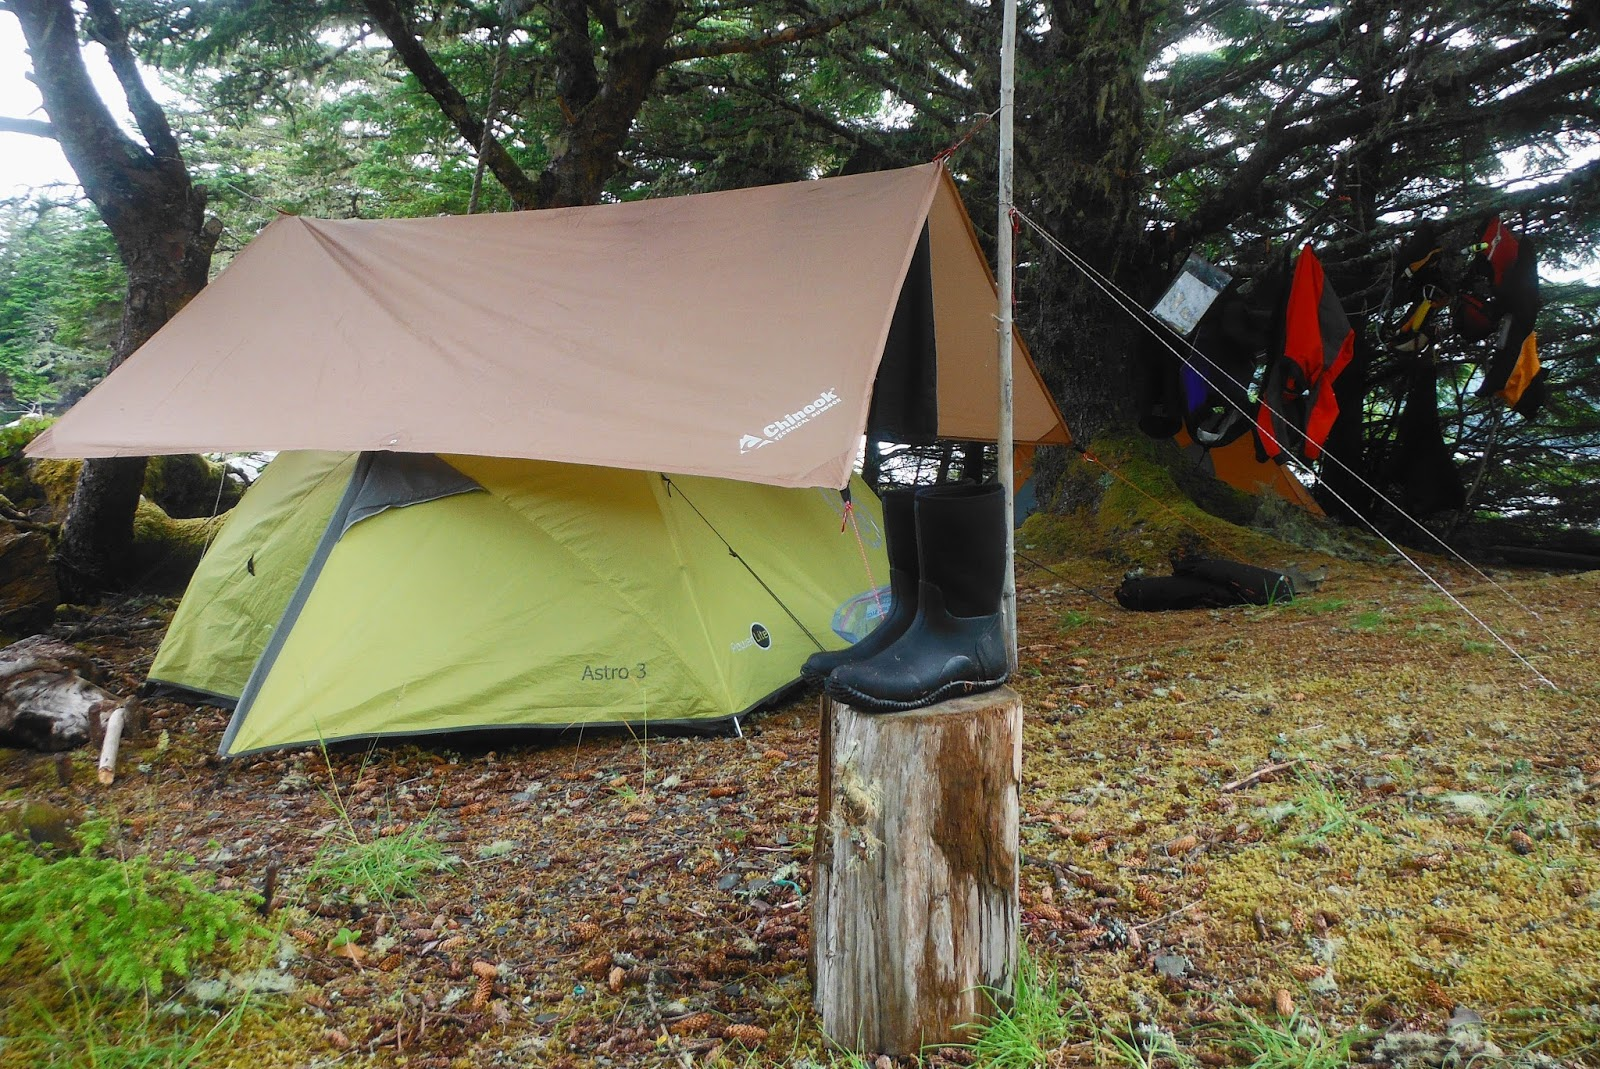 Carabiners come in handy when doing tarpology. Quick and easy to set up. & Gecko Paddler: Godu0027s Pocket - 7 Days plus 1 (Part 3)